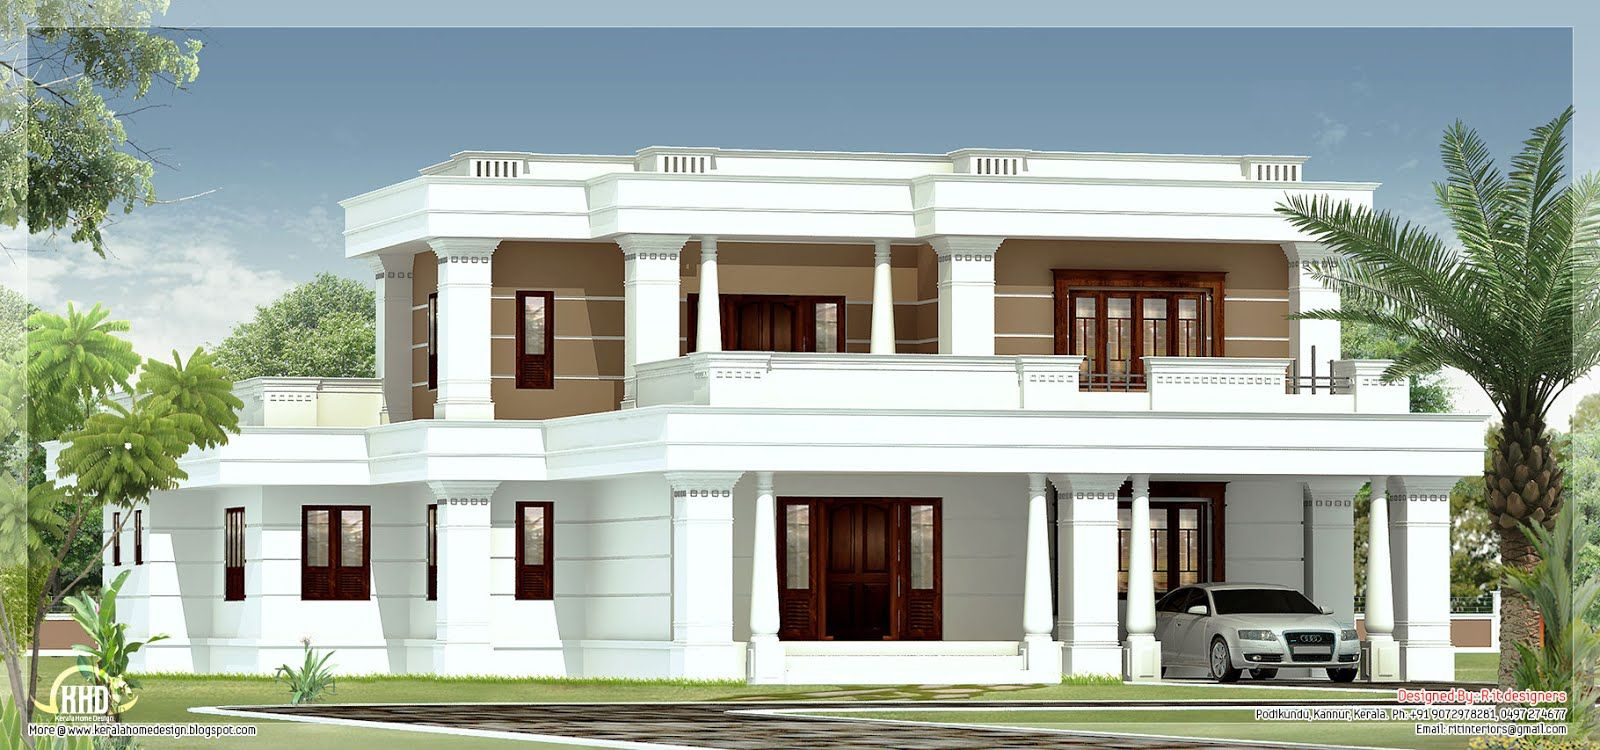 Spanish Style Villas Google Search Kerala House Design Indian Home Design House With Balcony